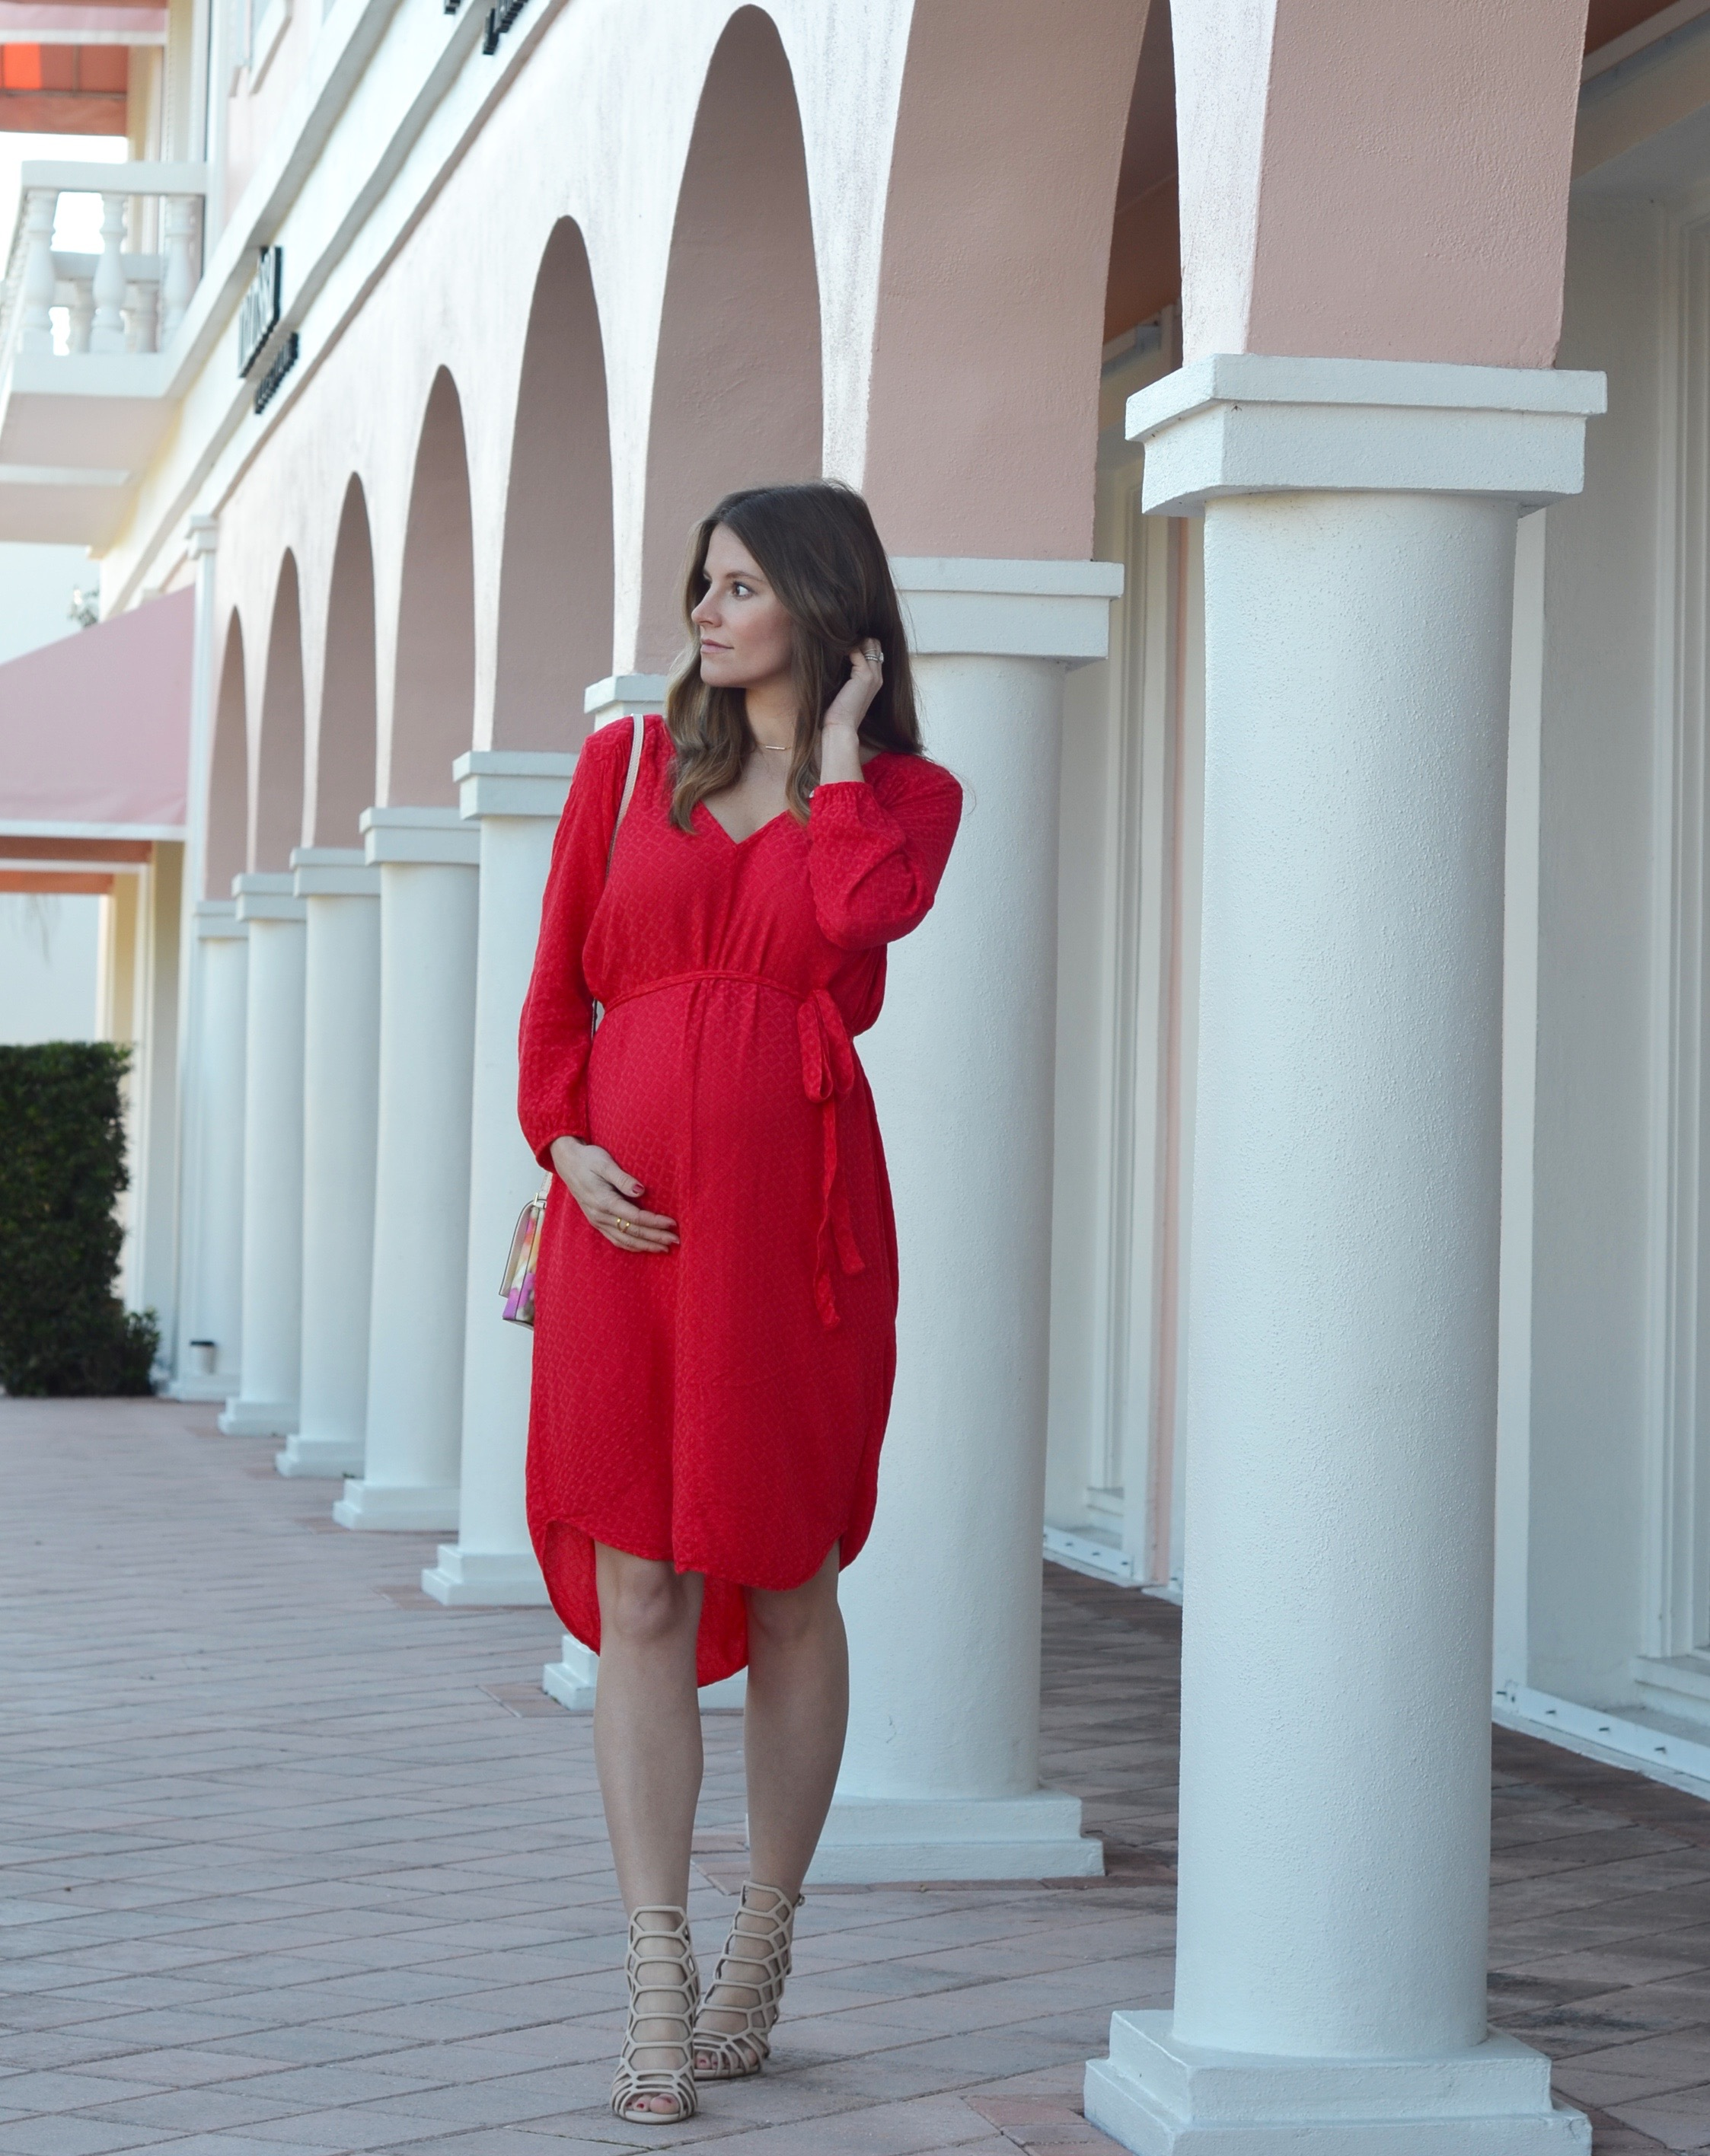 red dress valentines day outfit blogger